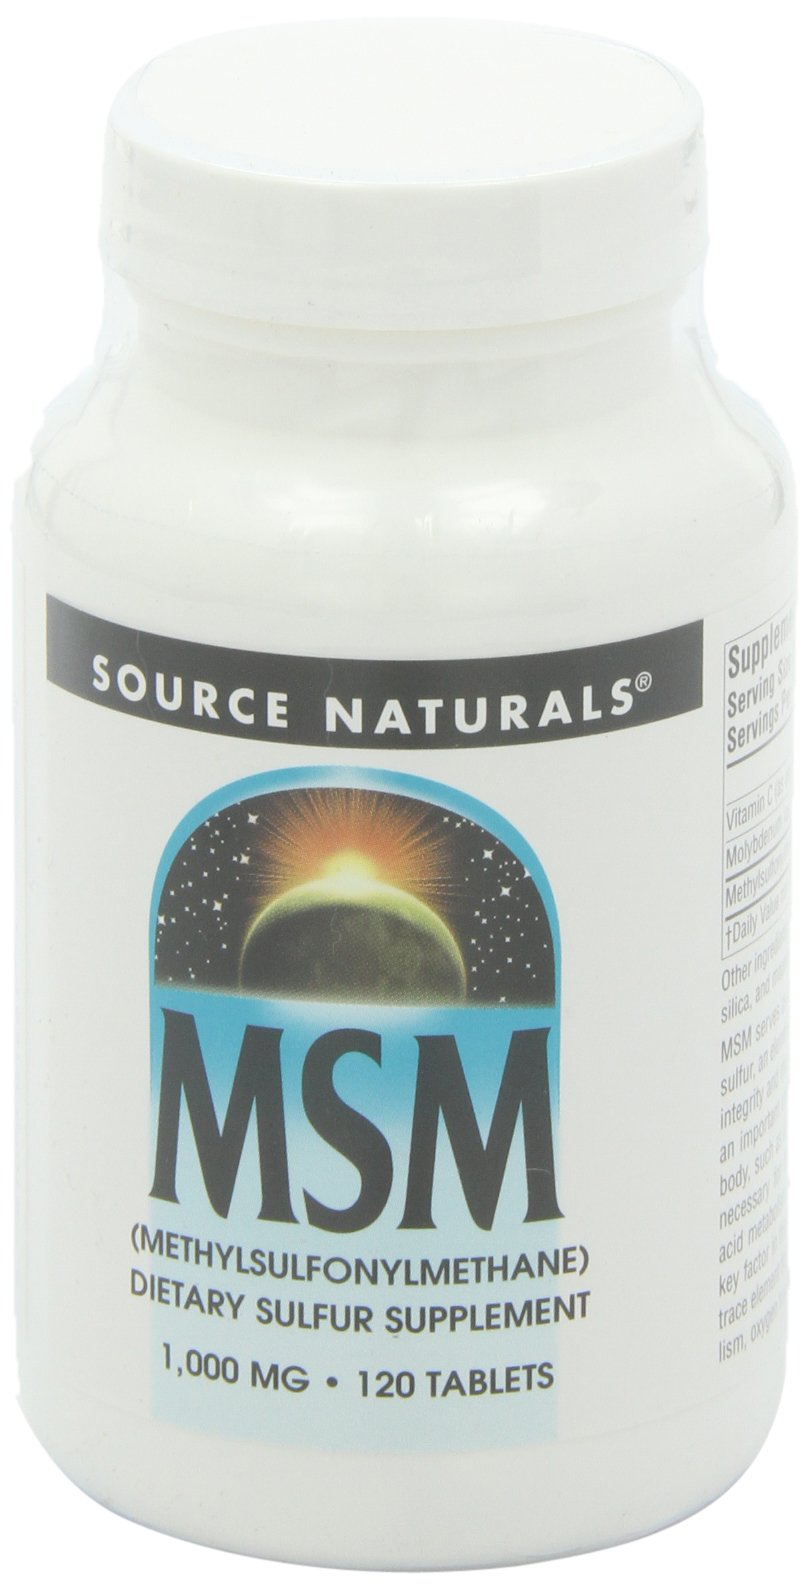 Source Naturals MSM with Vitamin C 1000mg, Nature's Source for Dietary Sulfur, 120 Tablets,2 Pack